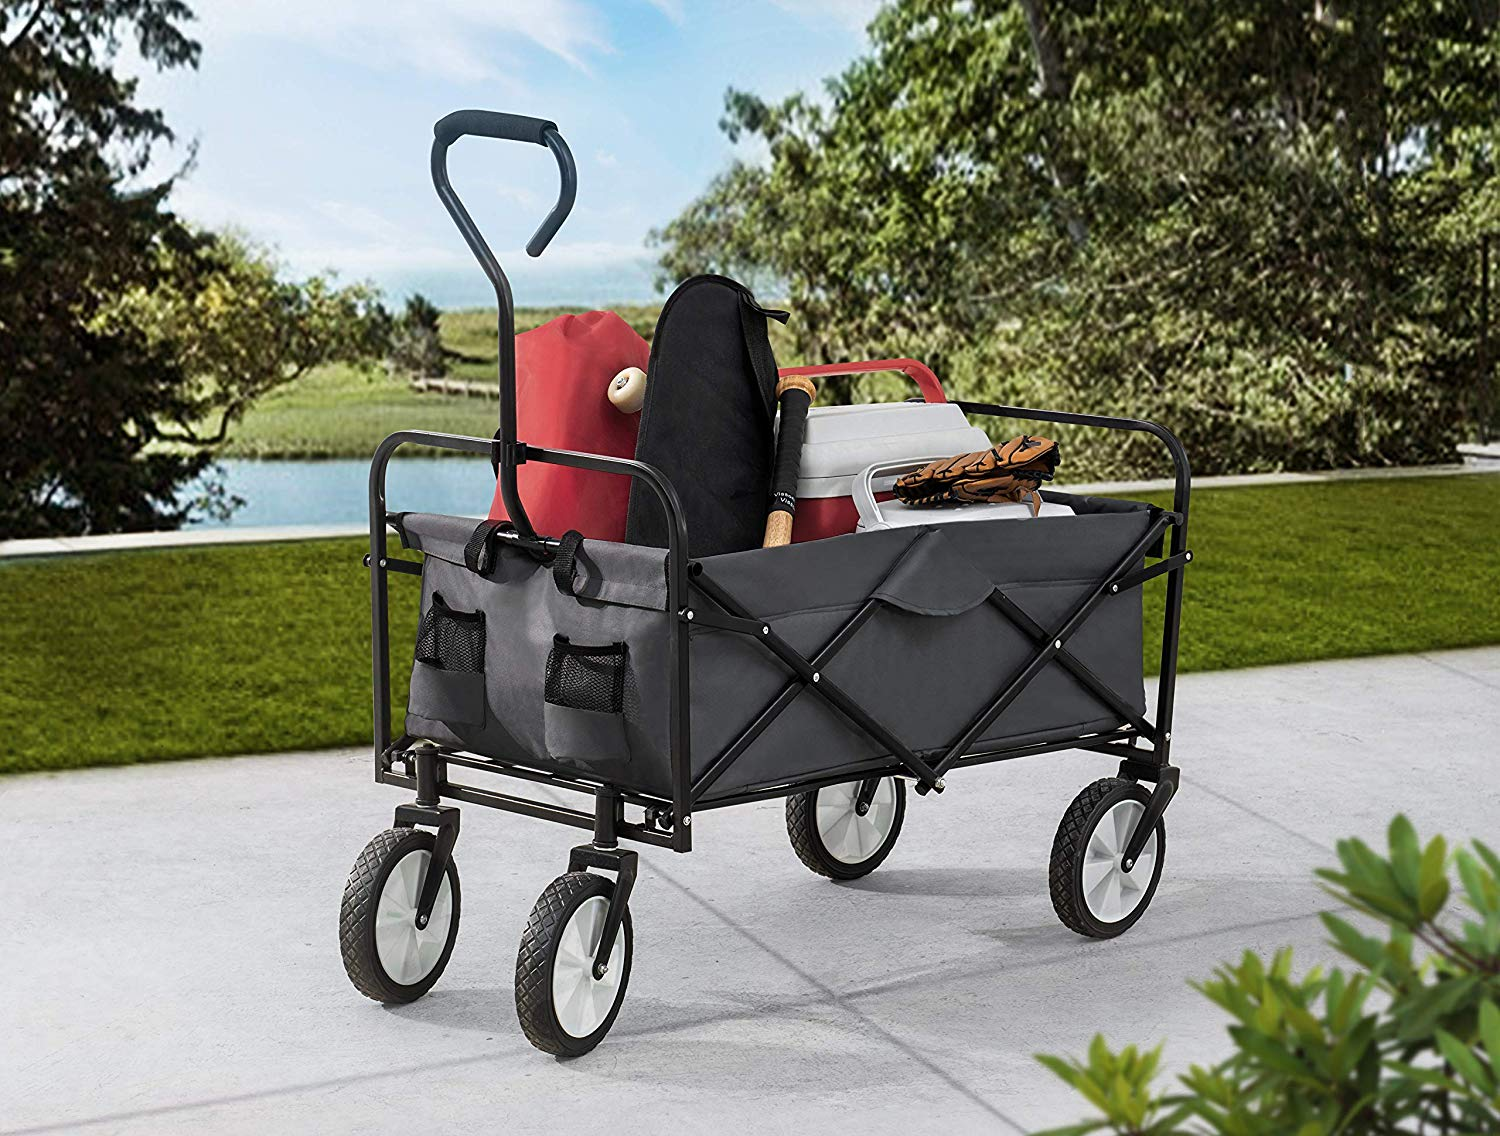 S2 Lifestyle Brazee Collapsible Folding Wagon Cart | Best Beach Carts